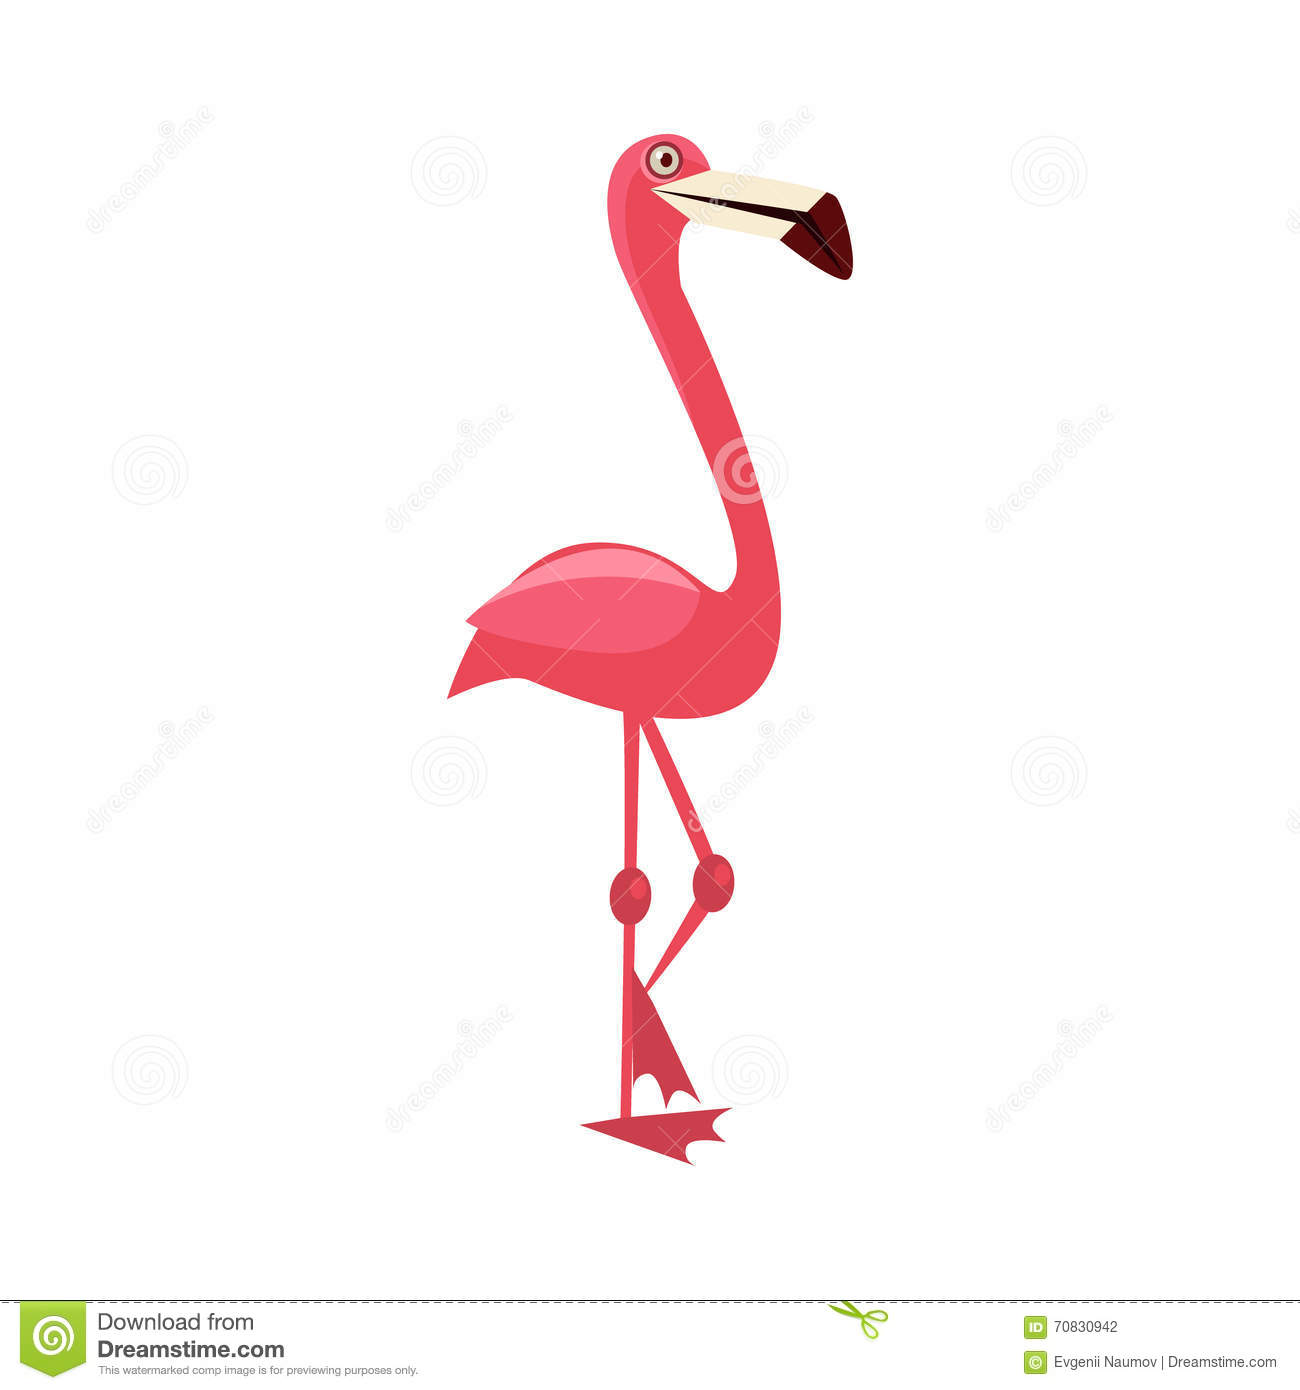 bird in hand milfs dating site Definition of a bird in the hand in the idioms dictionary a bird i enjoy dating this phrase refers to the proverb a bird in hand is worth two in.